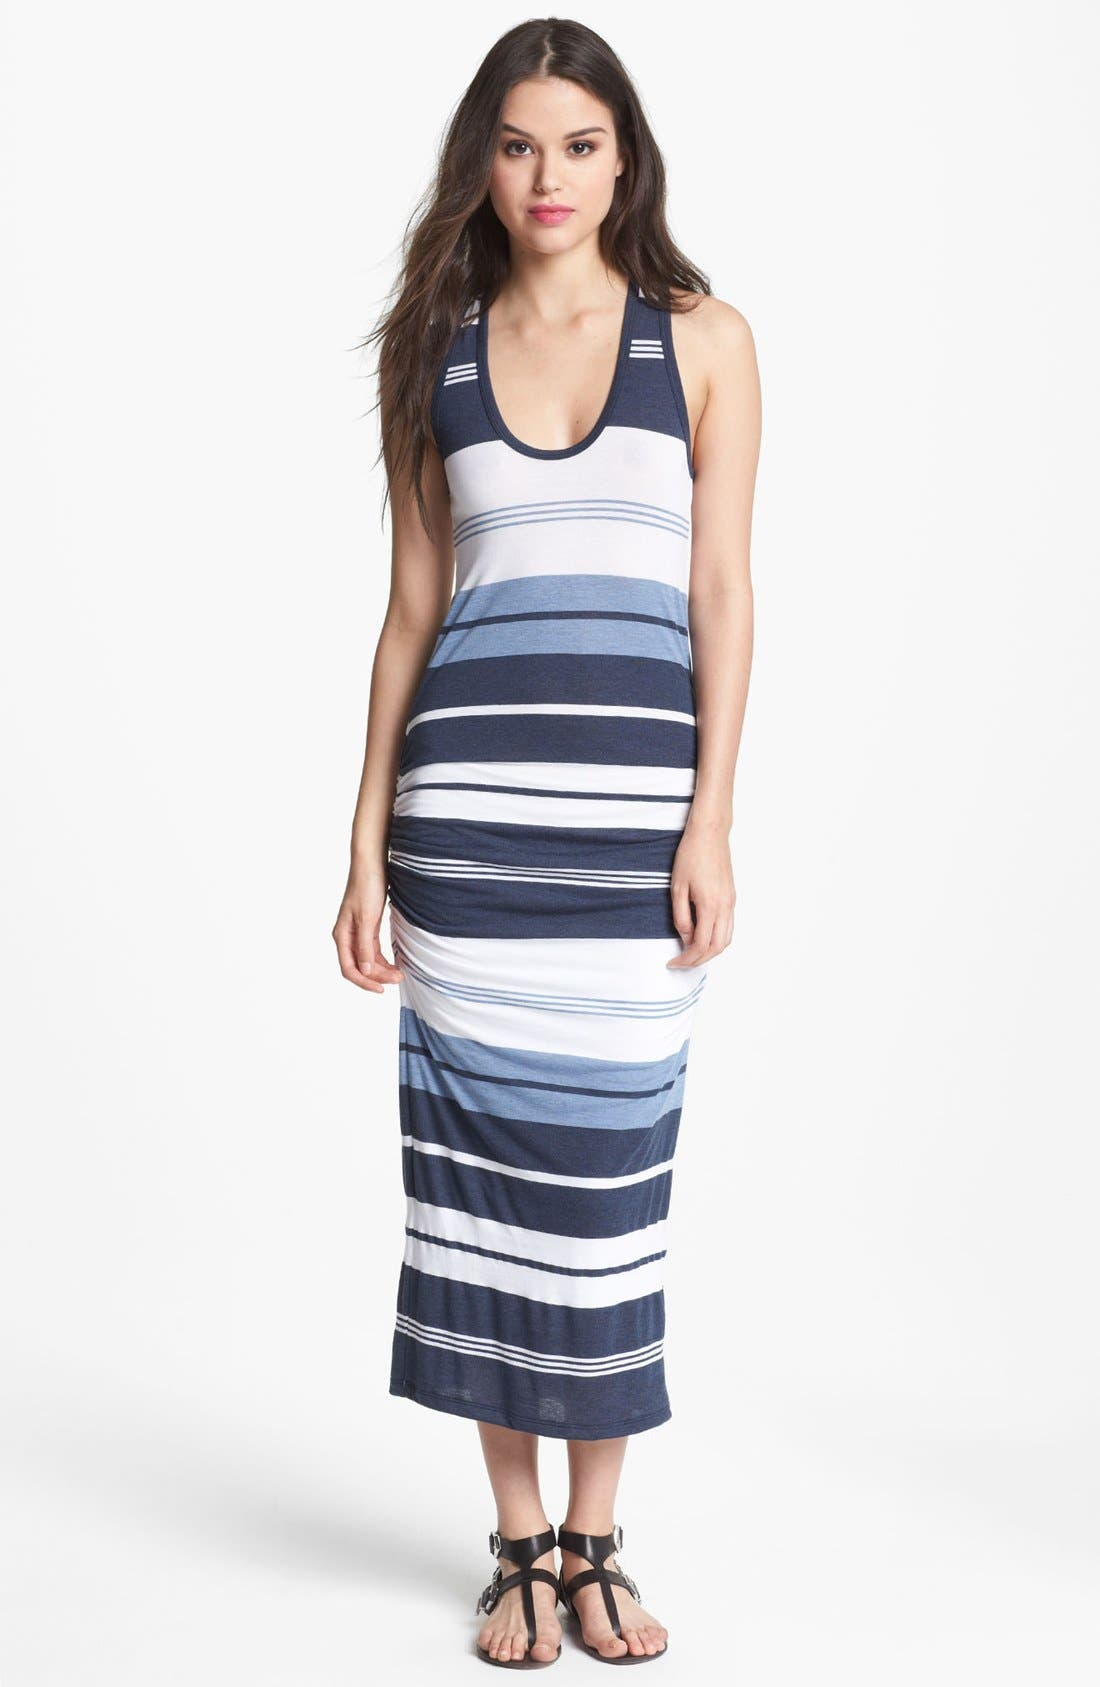 Main Image - James Perse 'Pacific Stripe' Racerback Dress